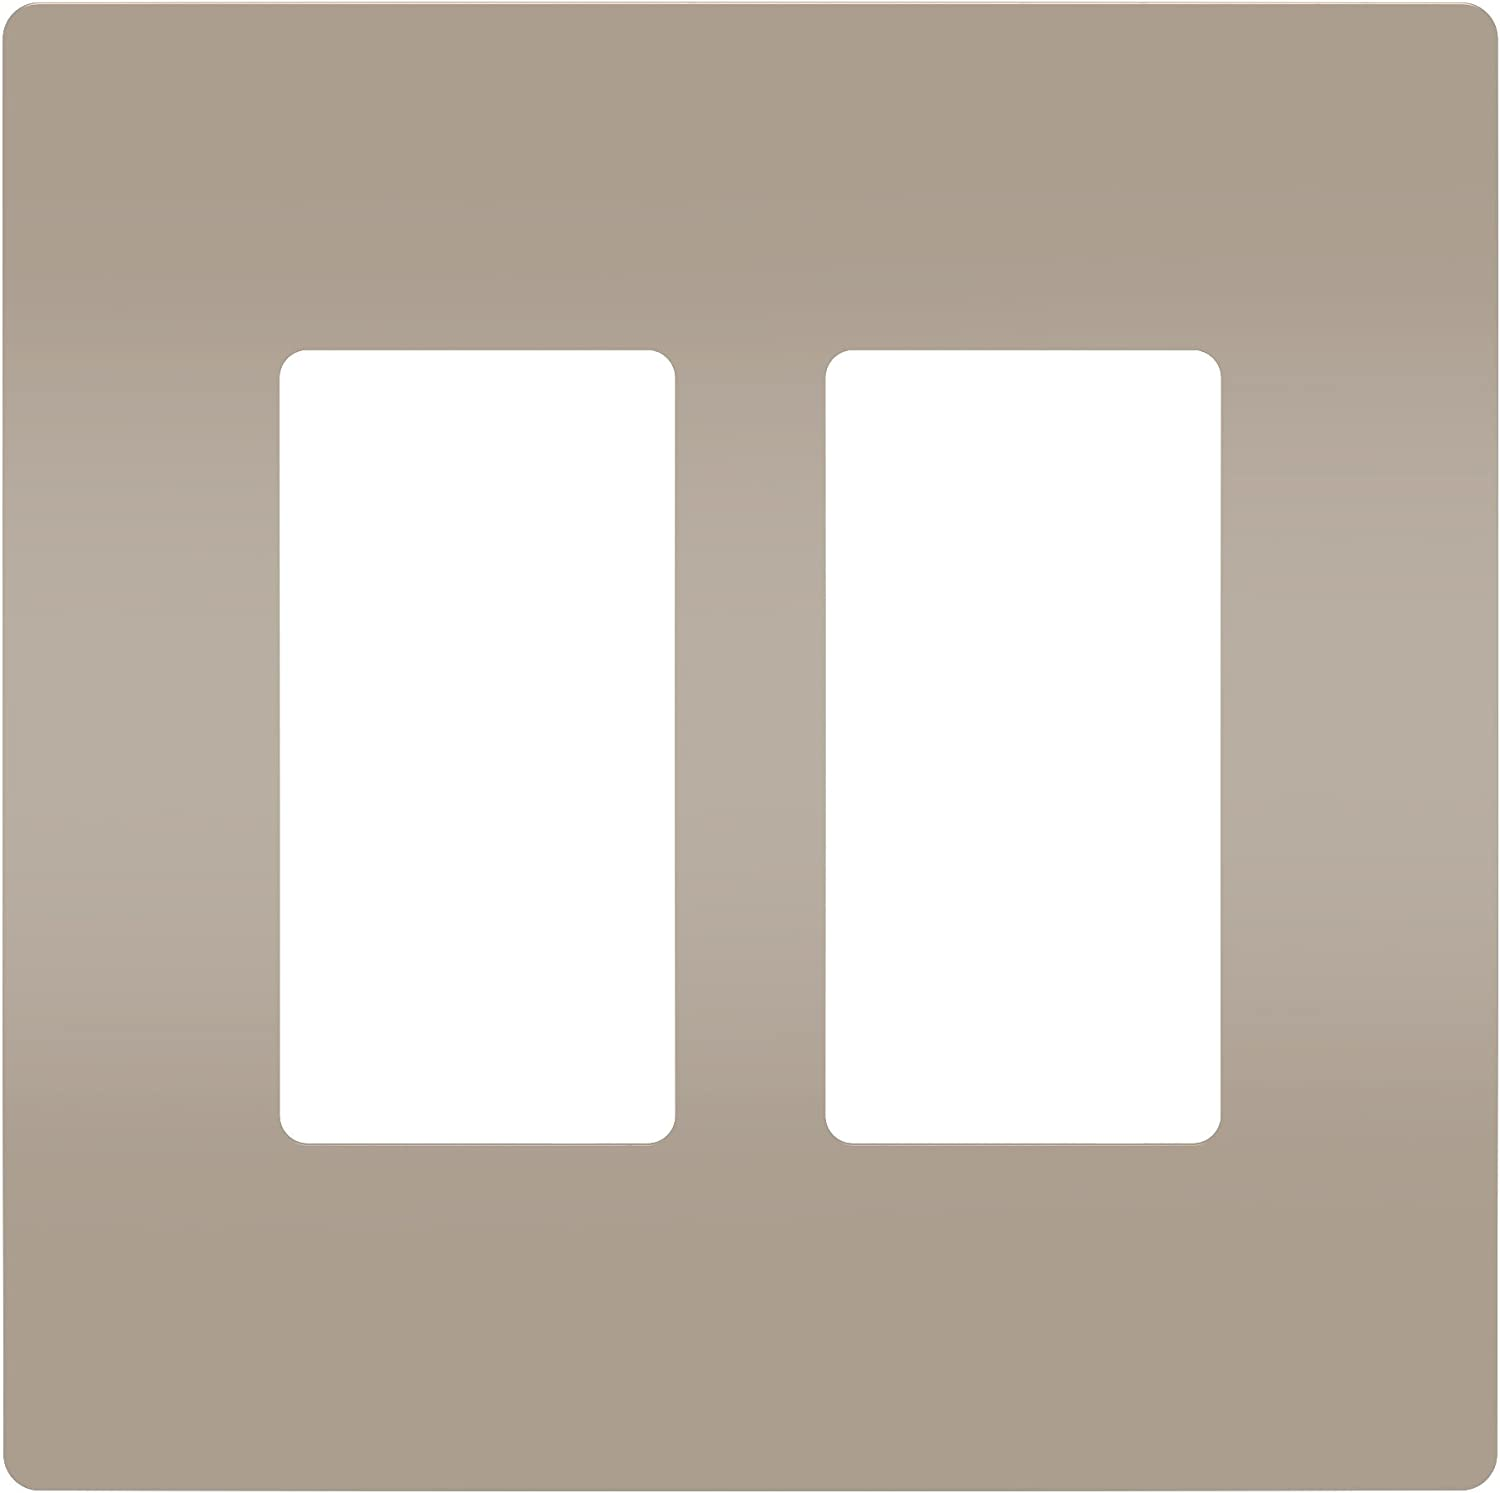 Legrand radiant Screwless Wall Plates for Decorator Rocker Outlets, 2-Gang, Brushed Nickel, RWP262NICC6